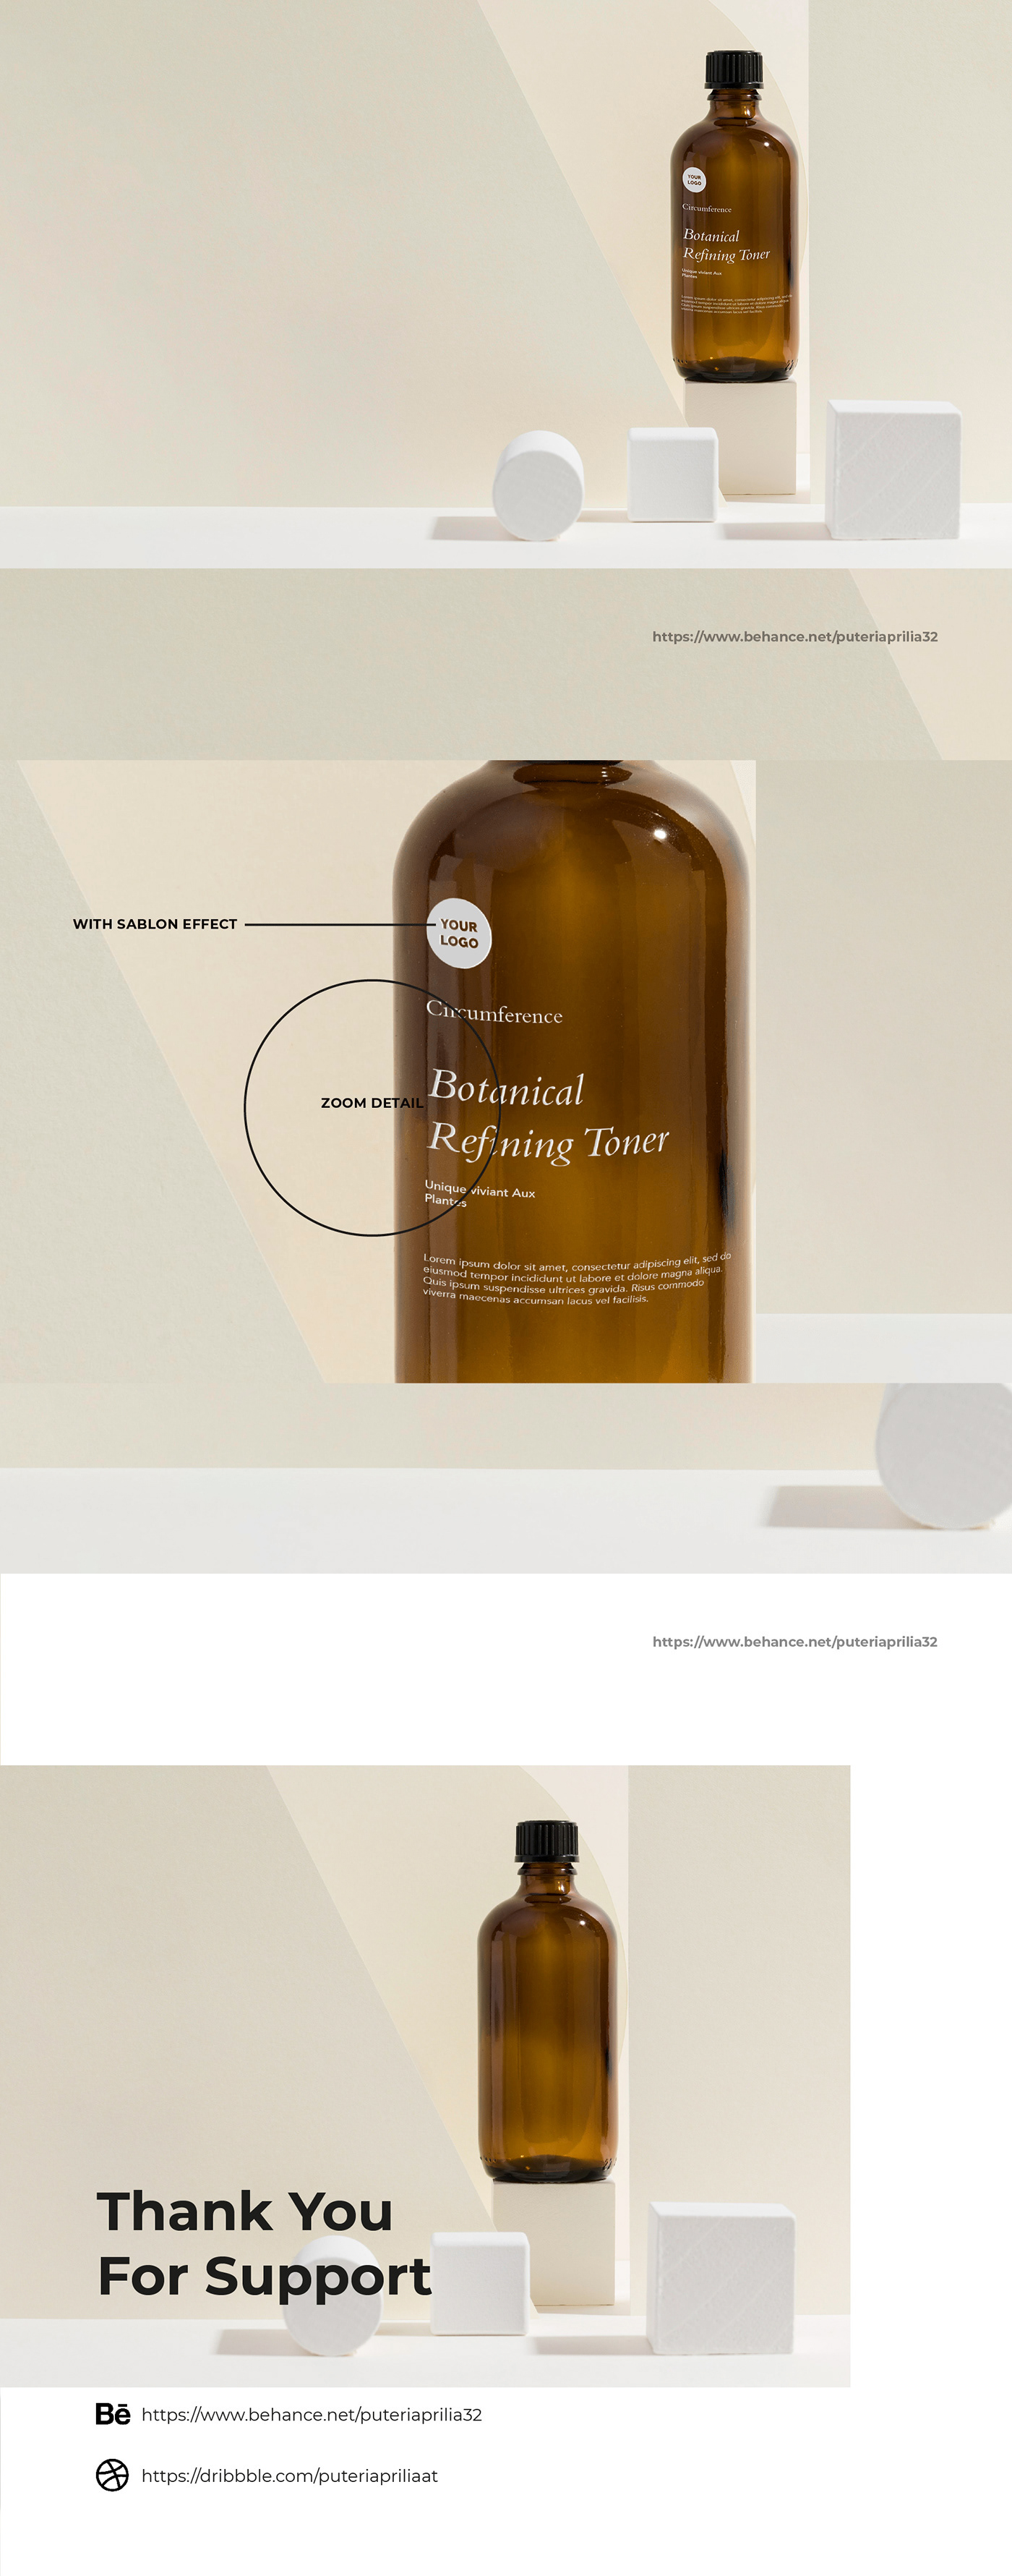 It is an elegant and unique cosmetic bottles mockup will attract consumers for nails, skin and more.